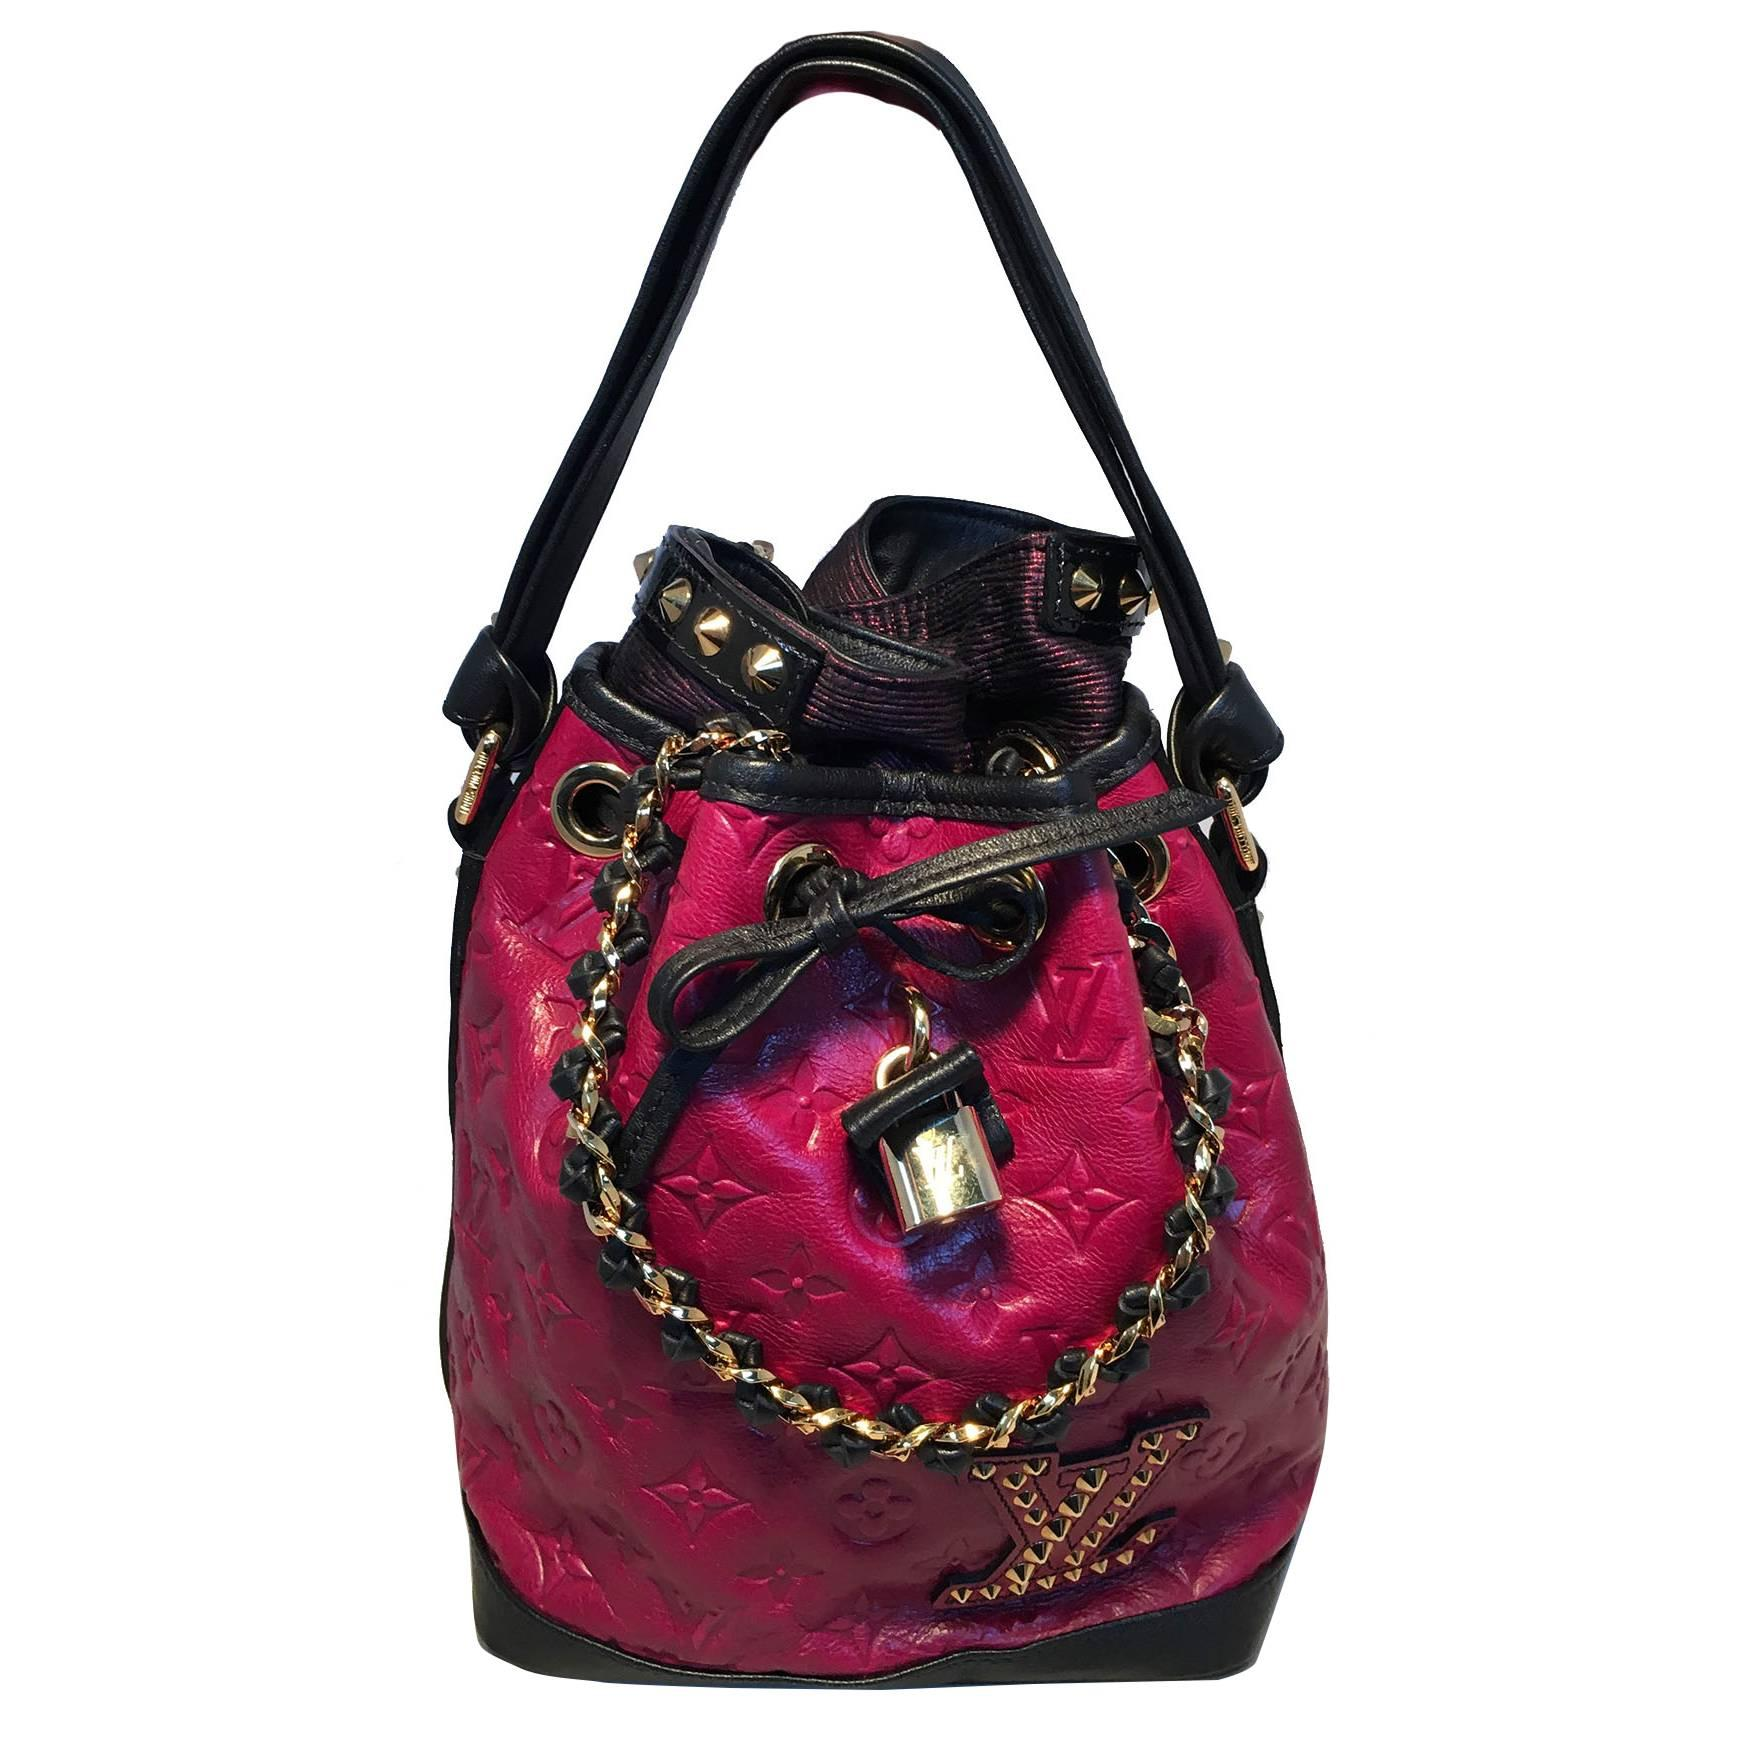 Louis Vuitton Ltd Ed Double Jeu Neo Noe Cranberry Bucket Bag, Fall/winter 2010